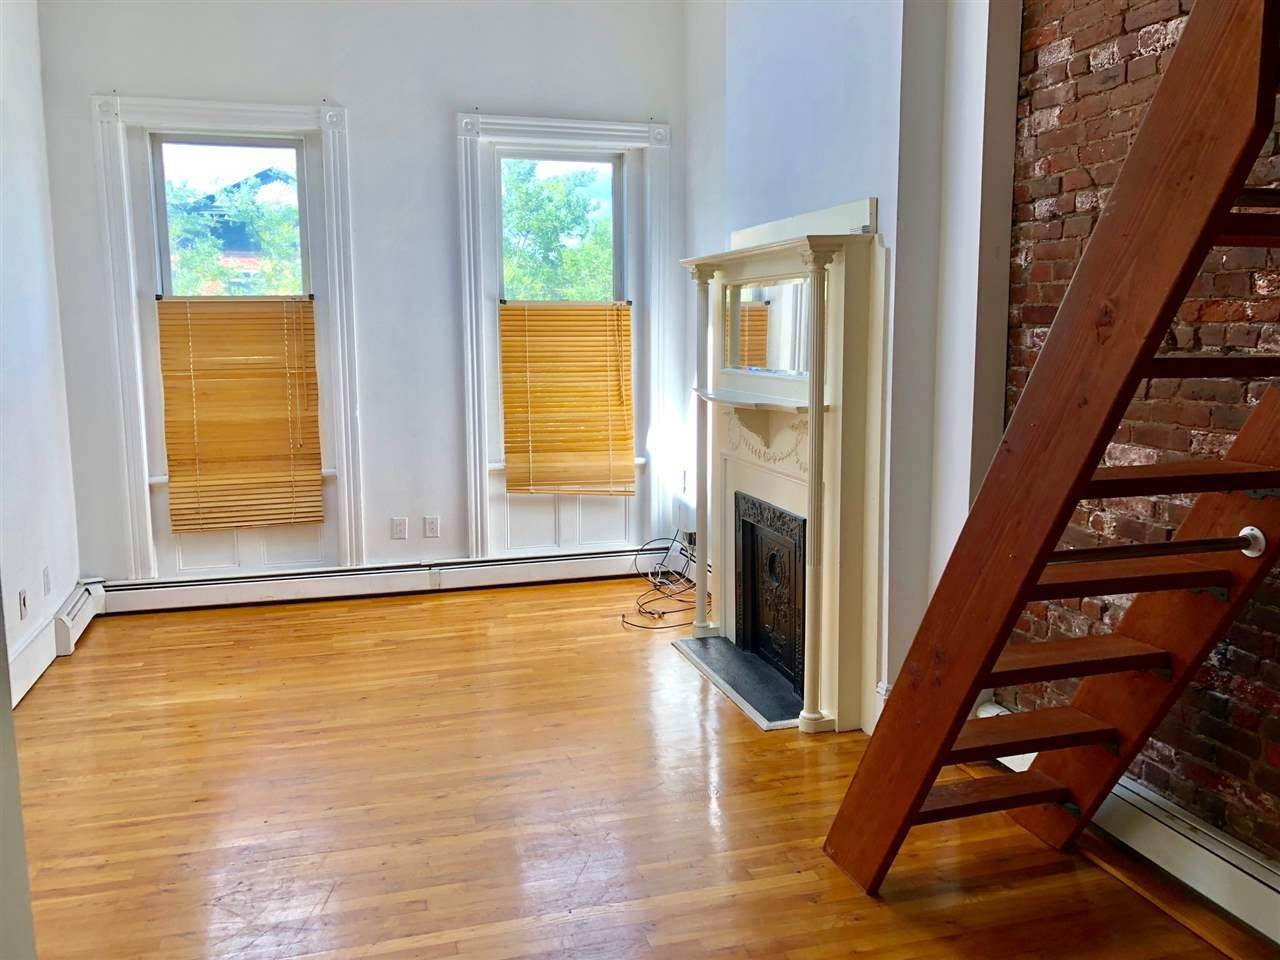 2. Residential for Rent at 97 Bright Street #4L Jersey City, New Jersey 07302 United States